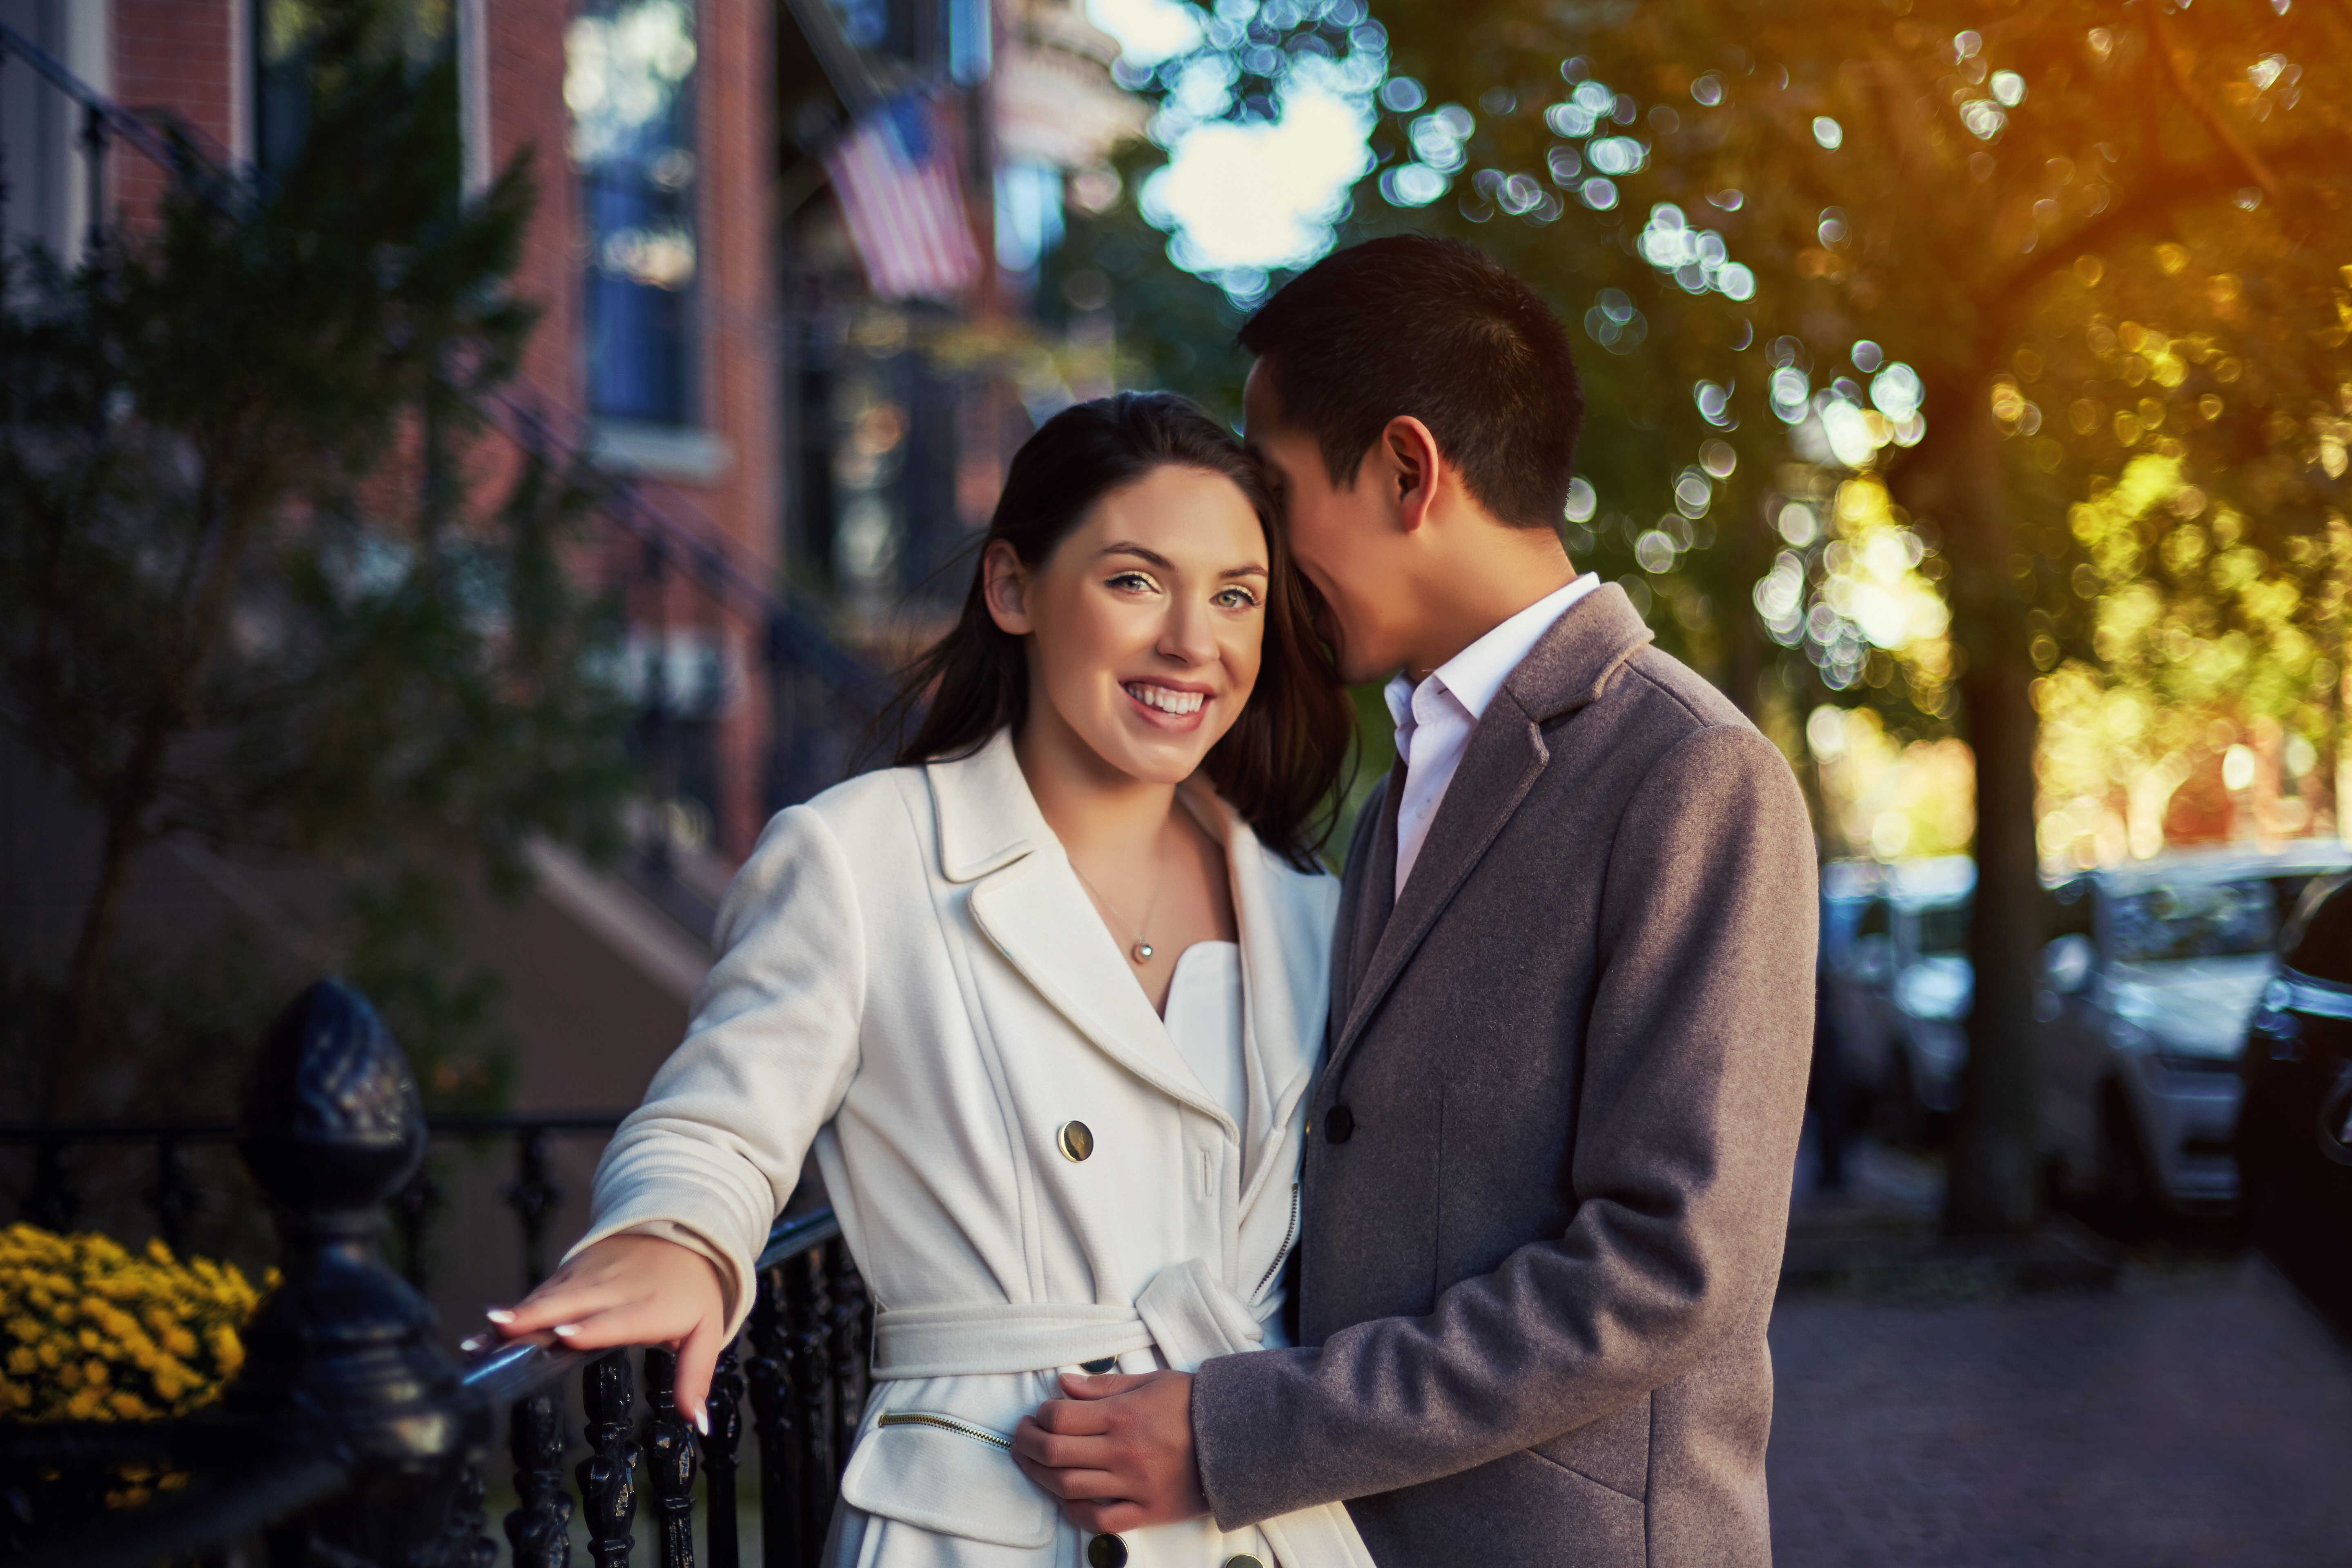 Engagement Photography in Acorn Street Boston